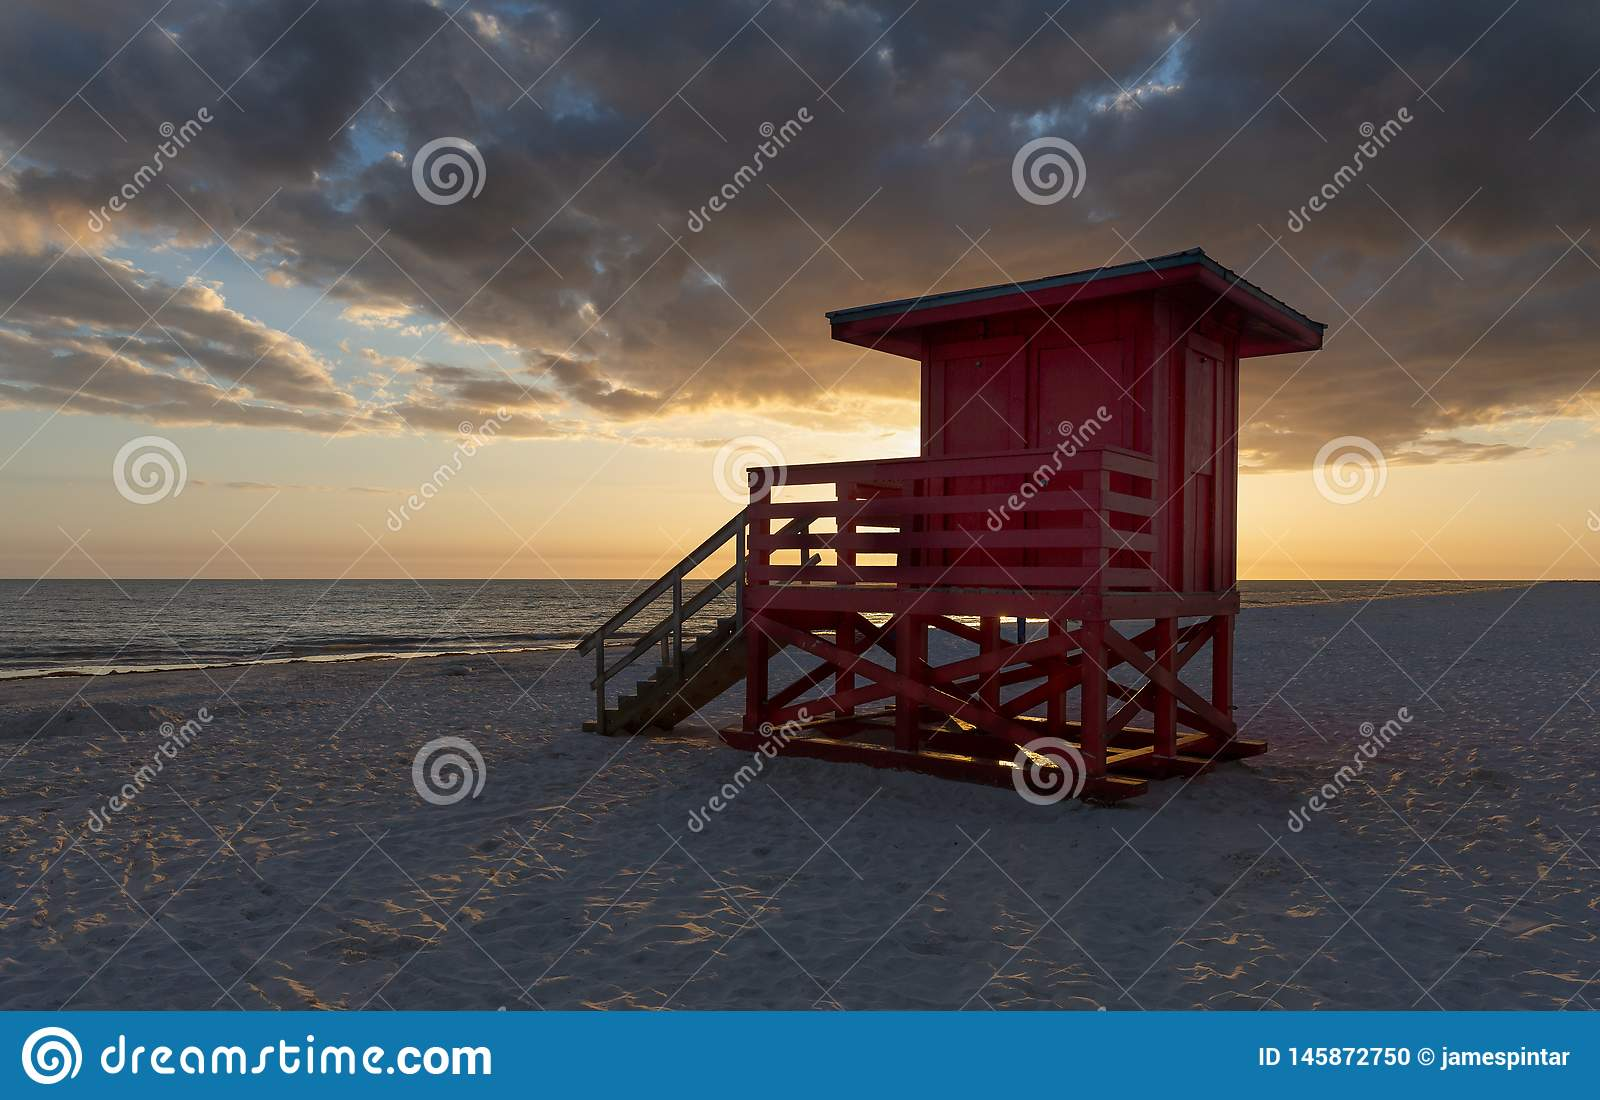 Backlit Lifeguard Tower at Sunset. Red lifeguard tower seen in partial silhouette and set against a cloud filled sky at sunset stock photo